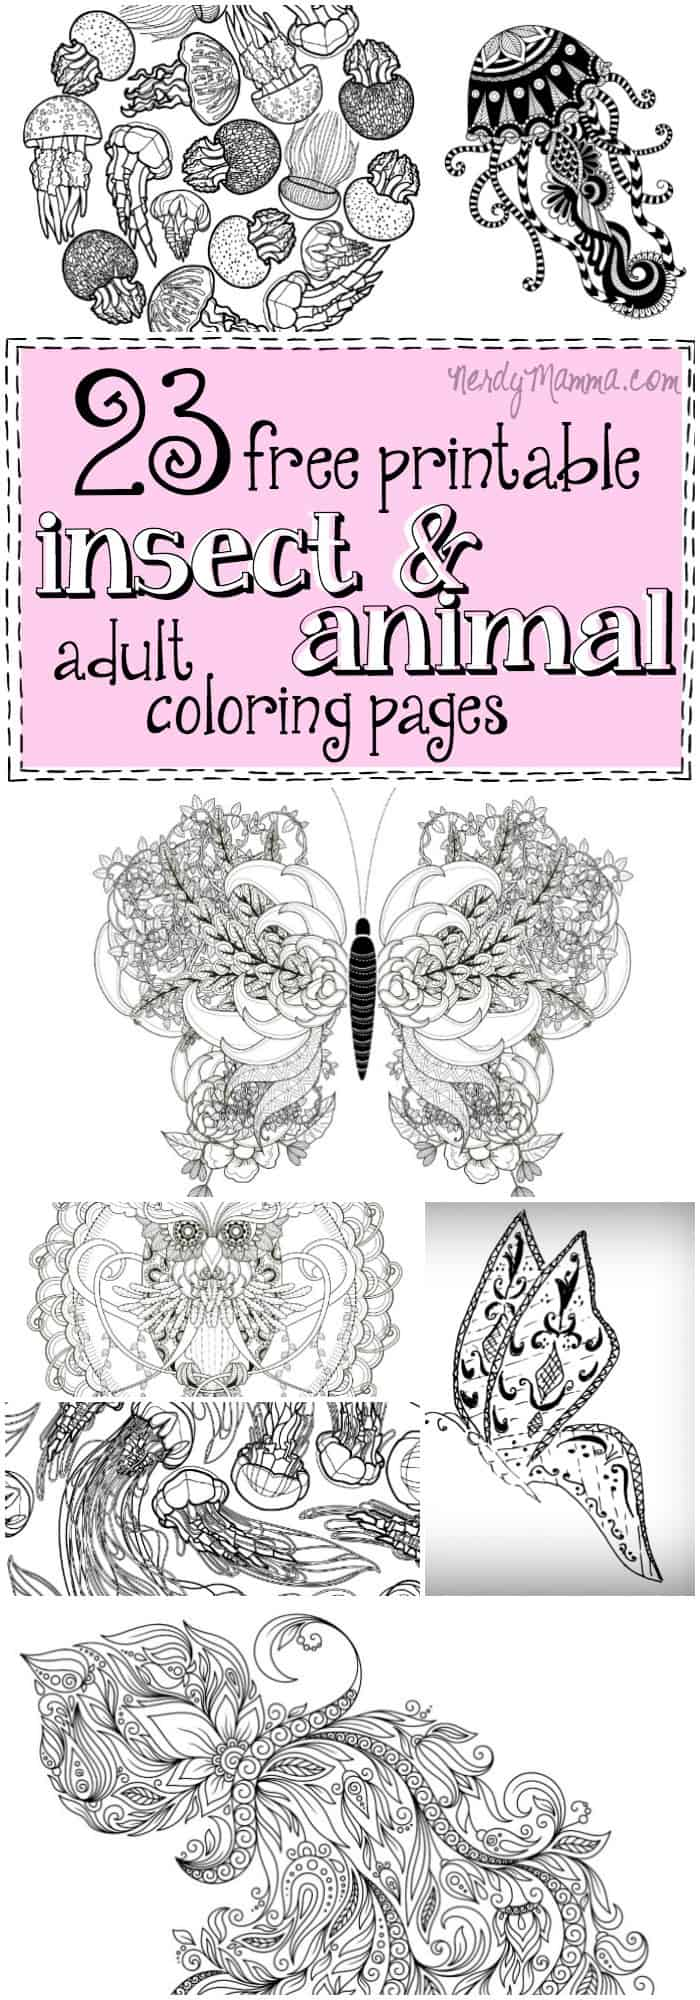 I love these awesome animal and insect adult coloring pages! Especially all the jellyfish. I could color those all day.